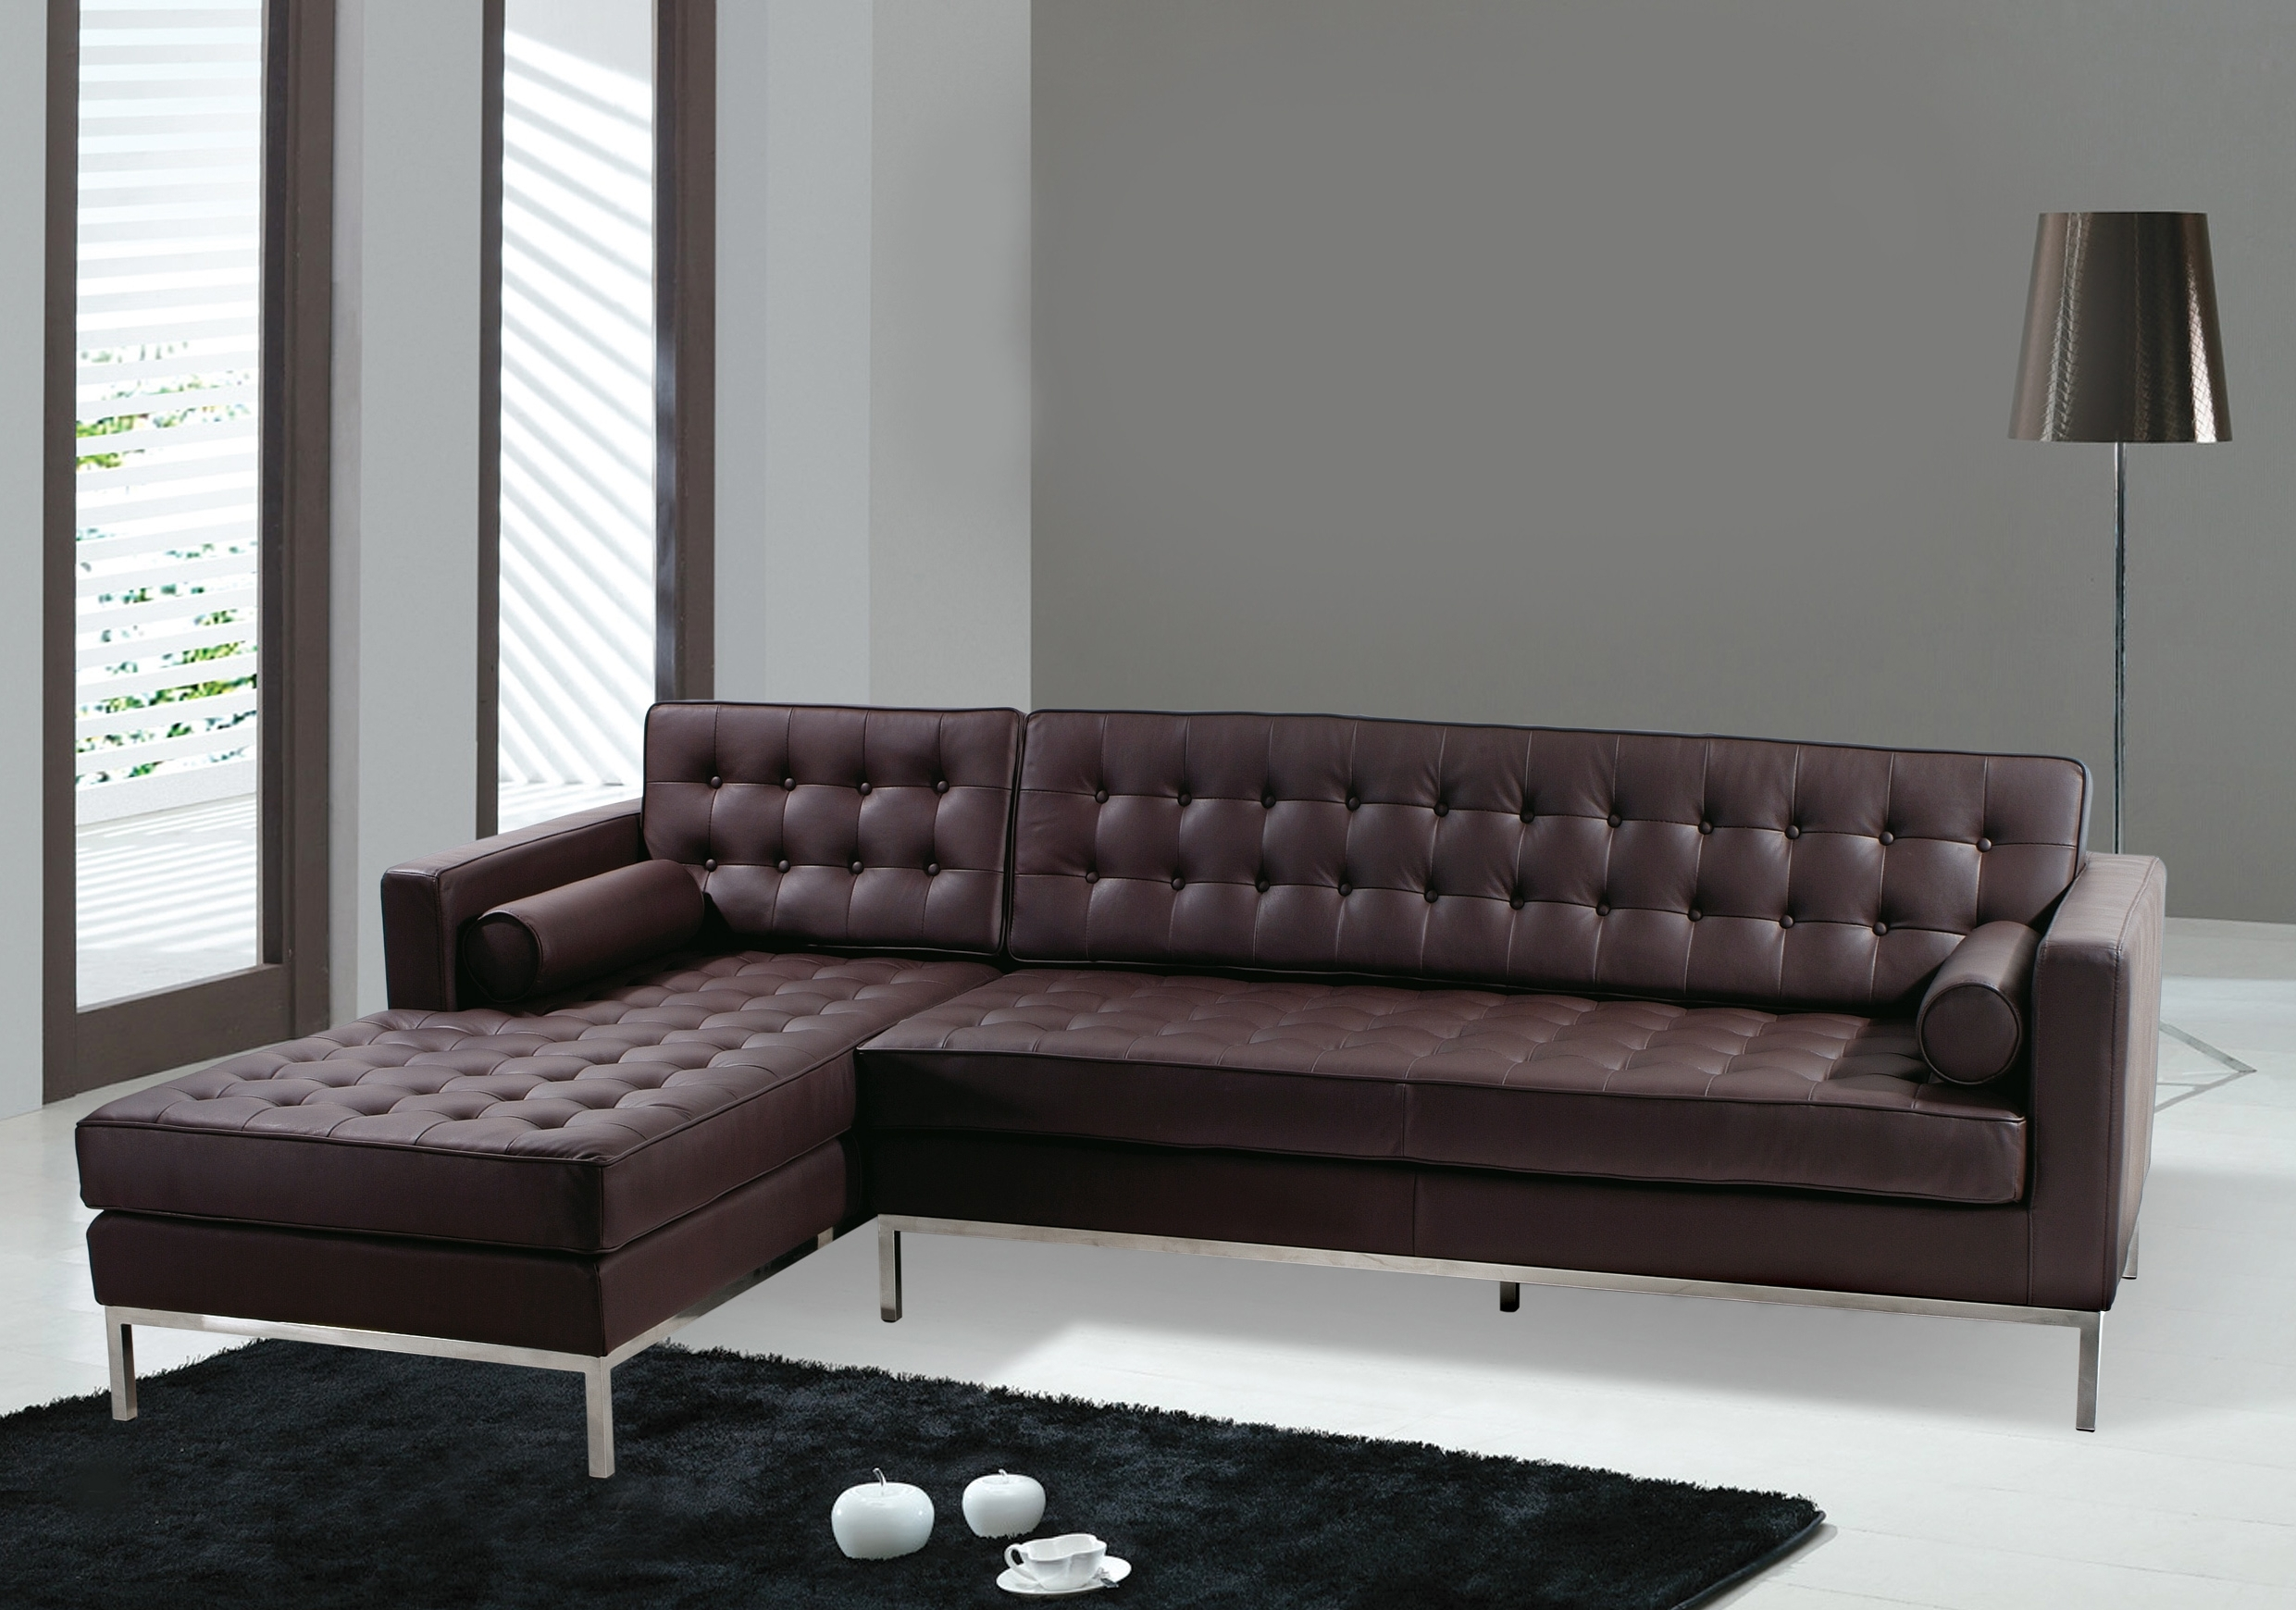 Clearance Sectional Sofas Intended For Trendy Furniture: Clearance Sectional Sofas (View 13 of 15)